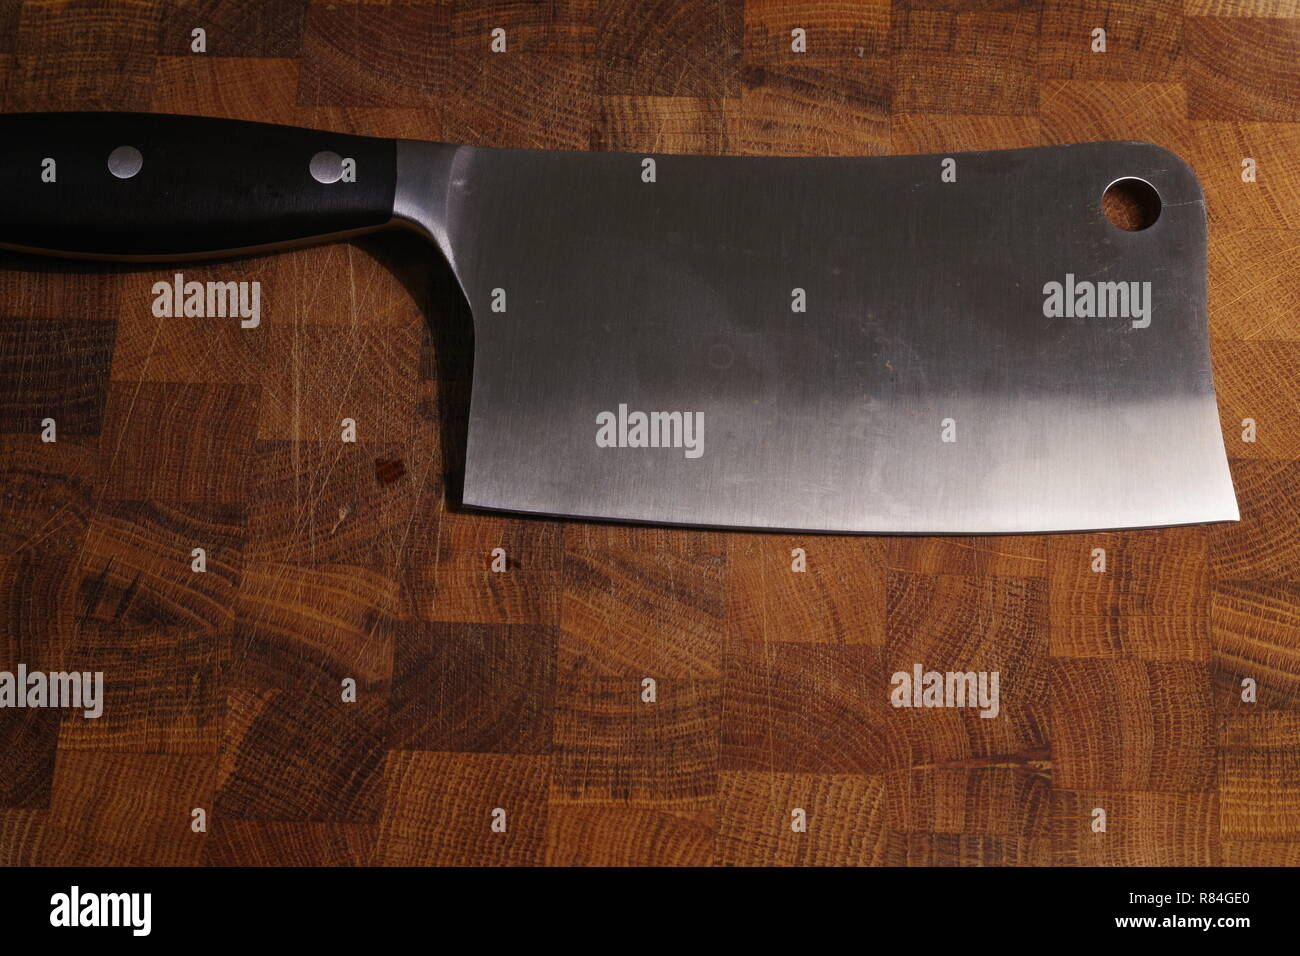 Close up of a Meat Cleaver Knife on an Oak Cutting Board. Kitchen, Cooking Still life. Aberdeen, Scotland, UK. - Stock Image